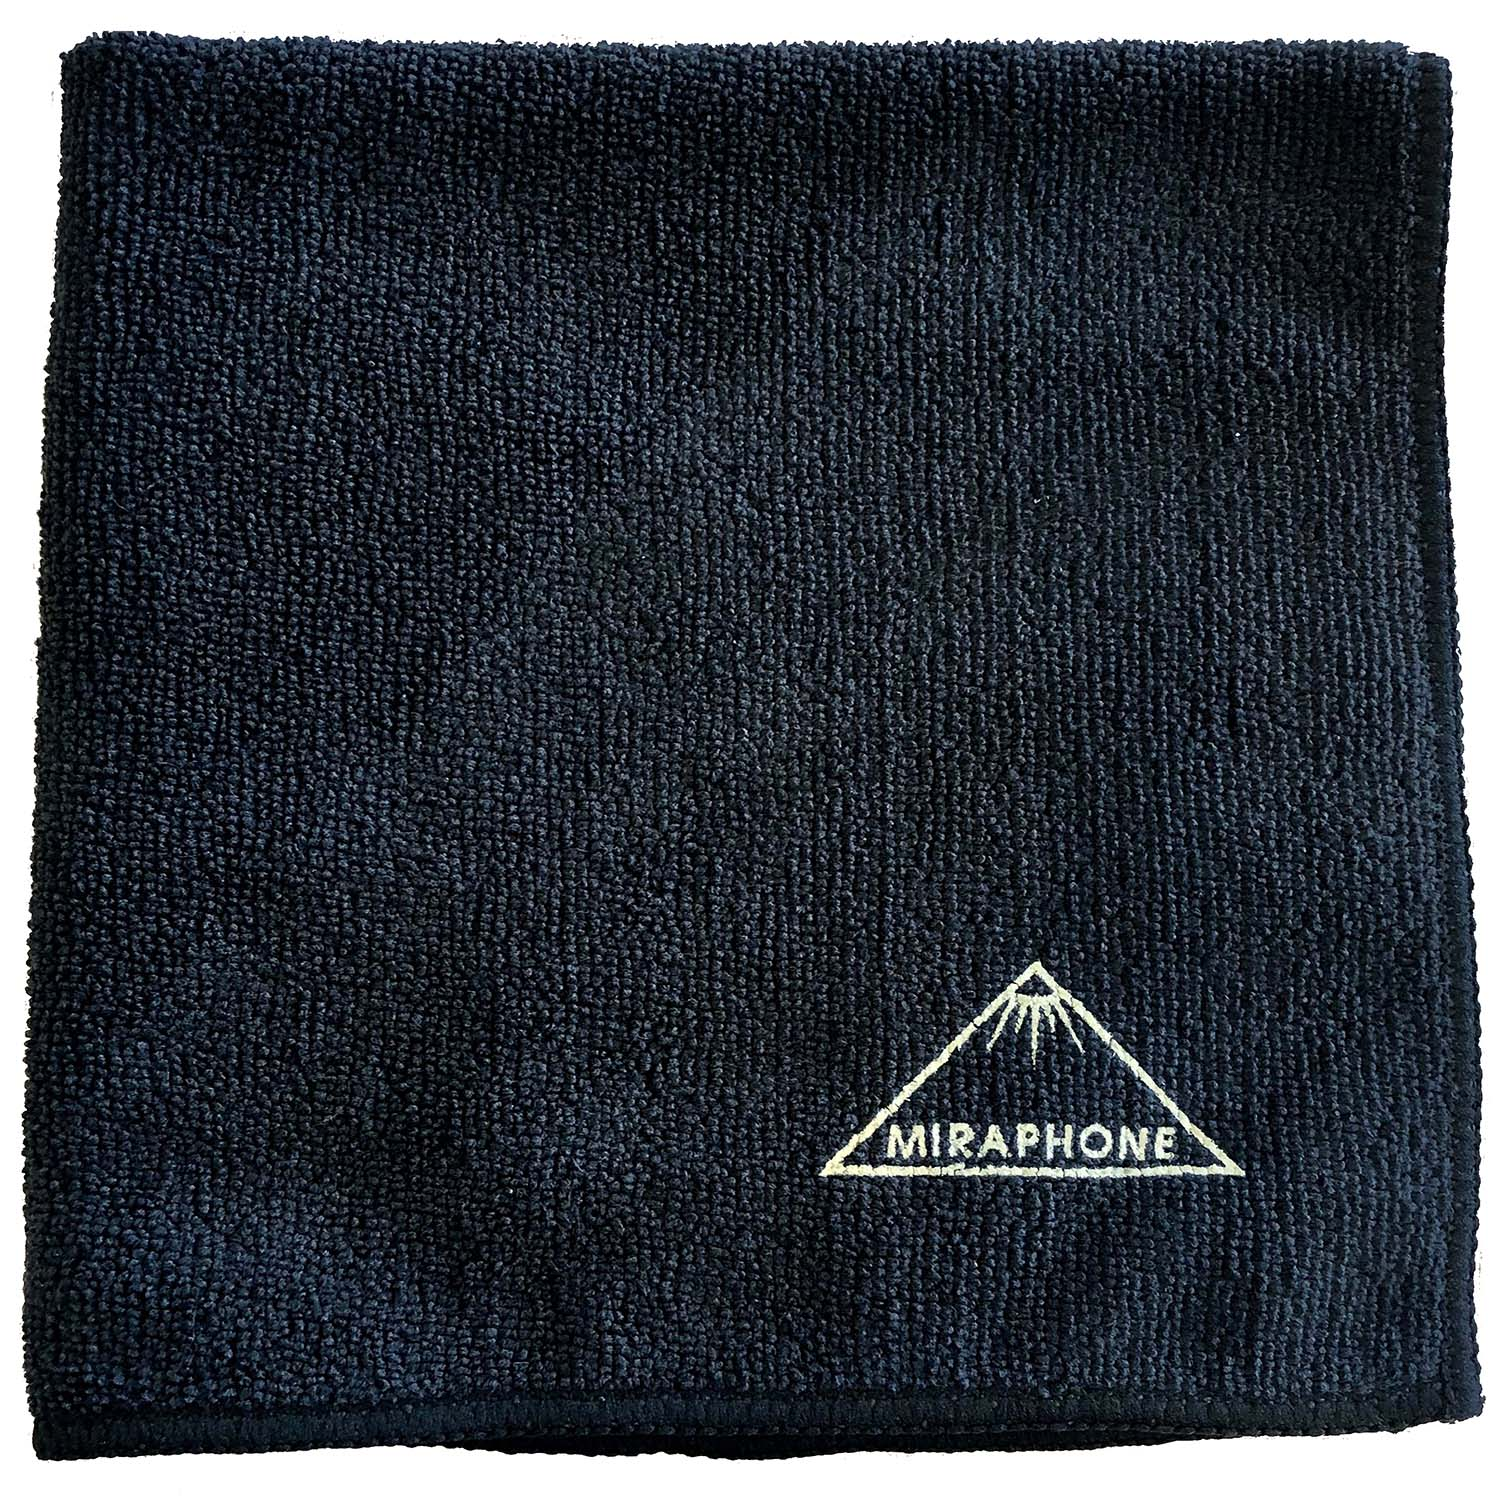 Miraphone Cleaning Cloth